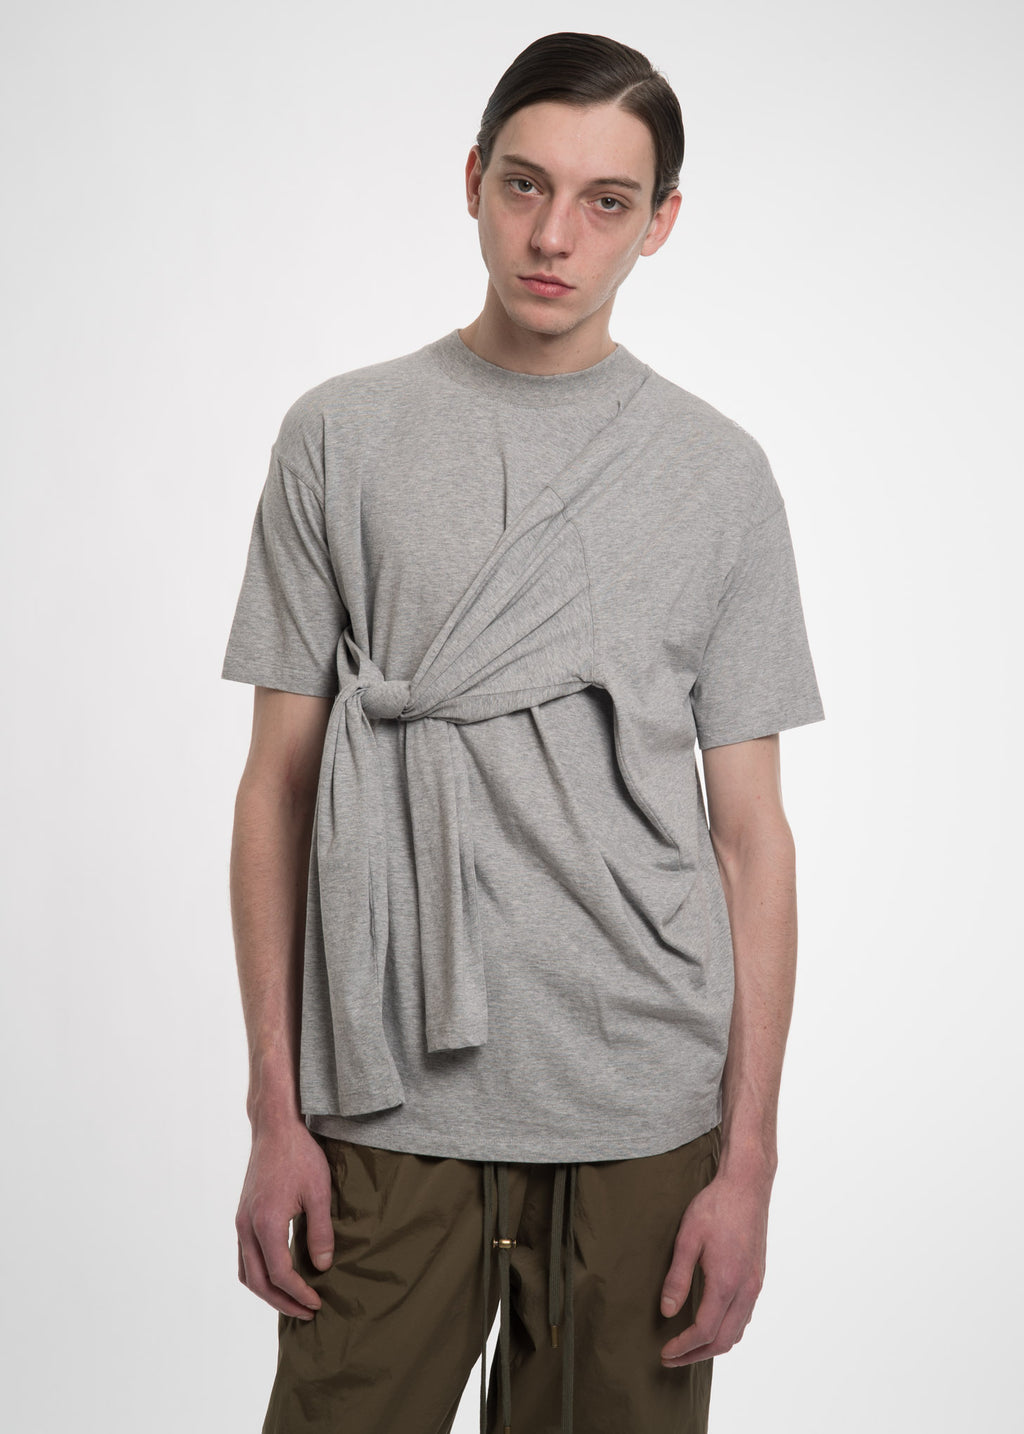 Y/Project, Grey Four Sleeved T-Shirt, 017 Shop